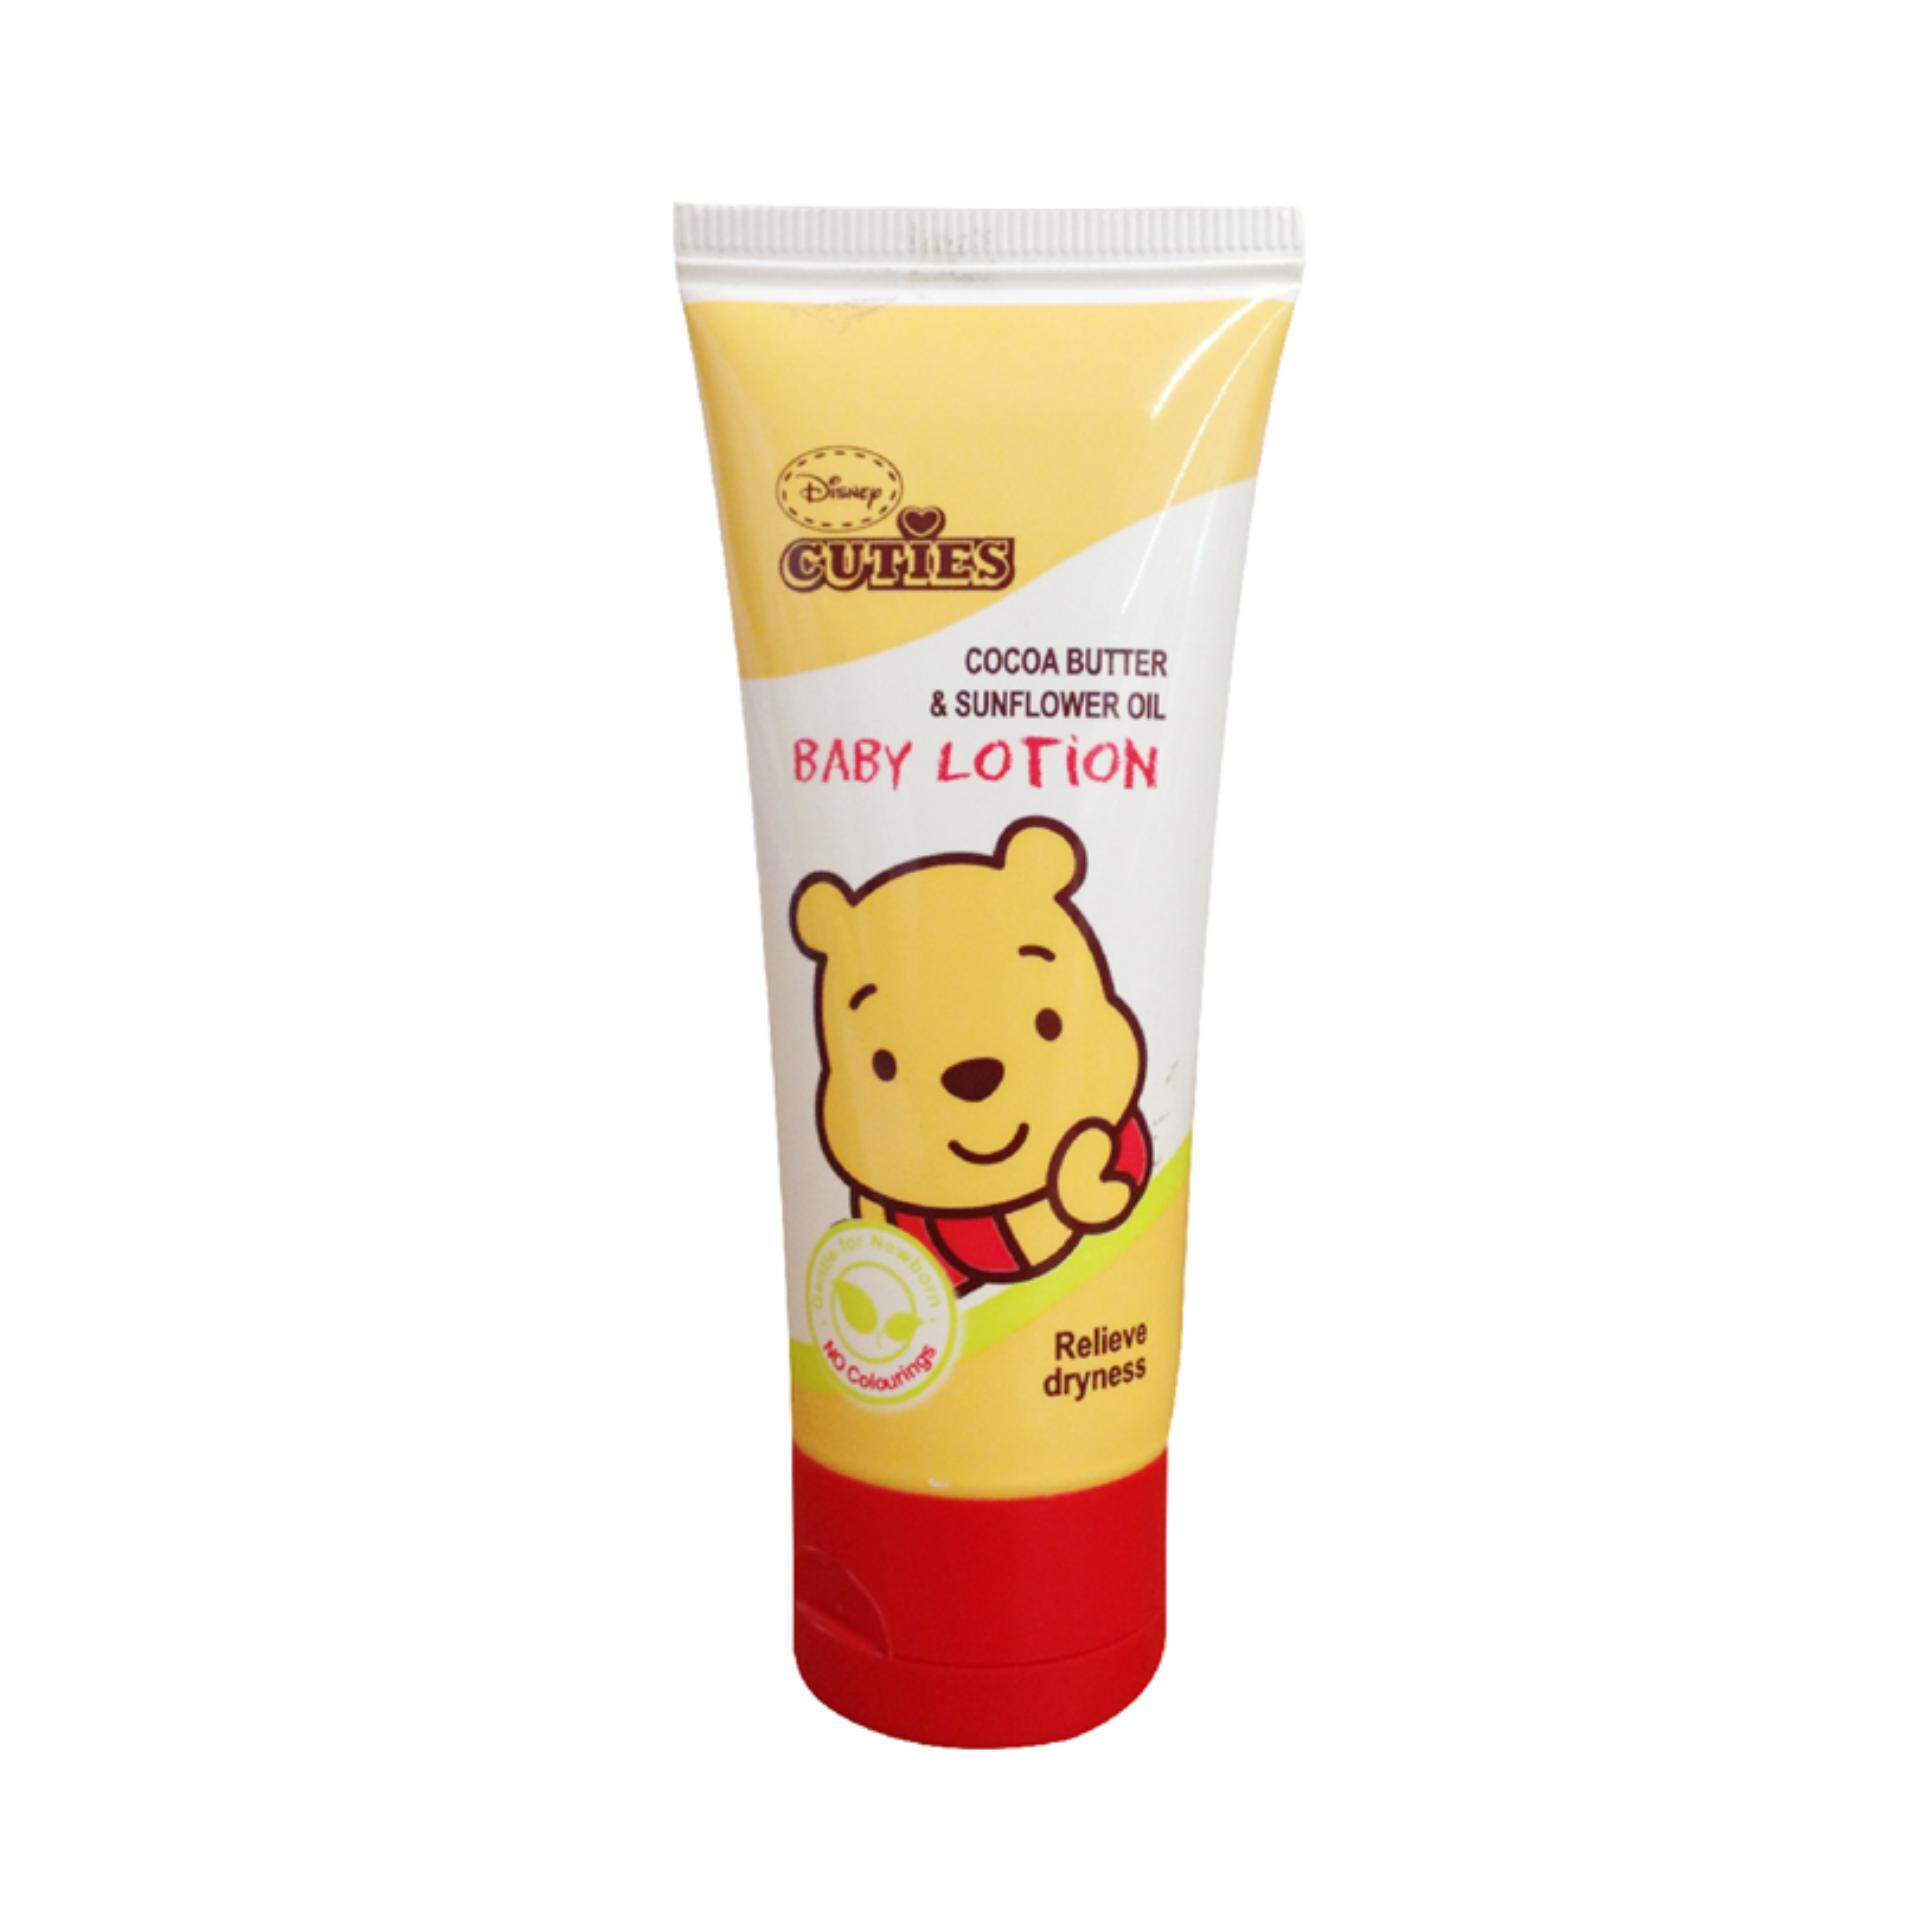 Disney Cuties Baby Lotion 50ML - Cocoa Butter & Sunflower Oil